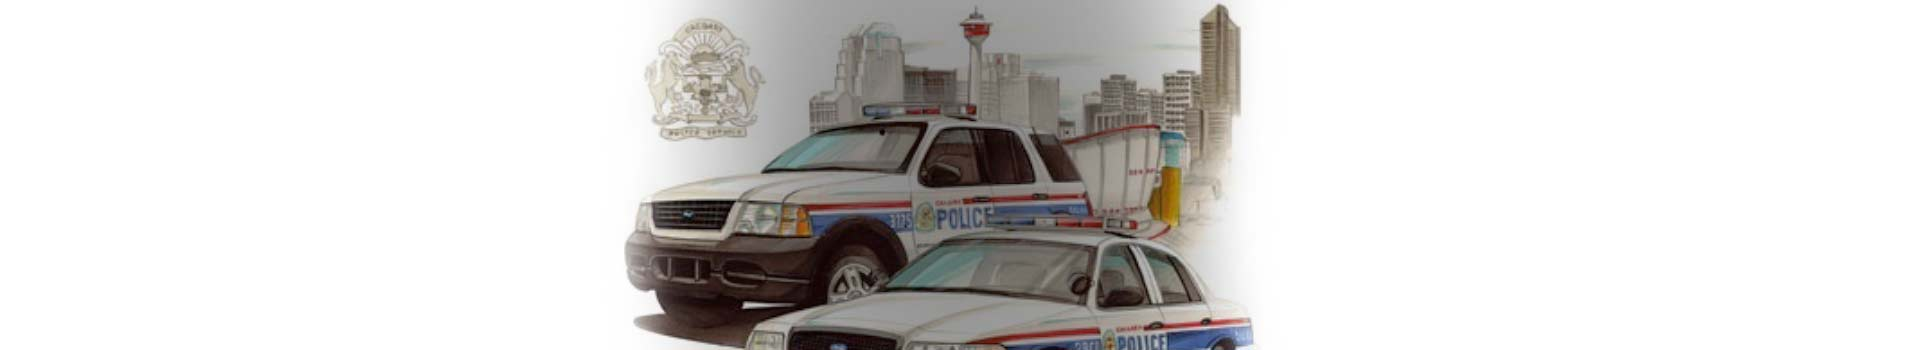 Calgary police vehicles